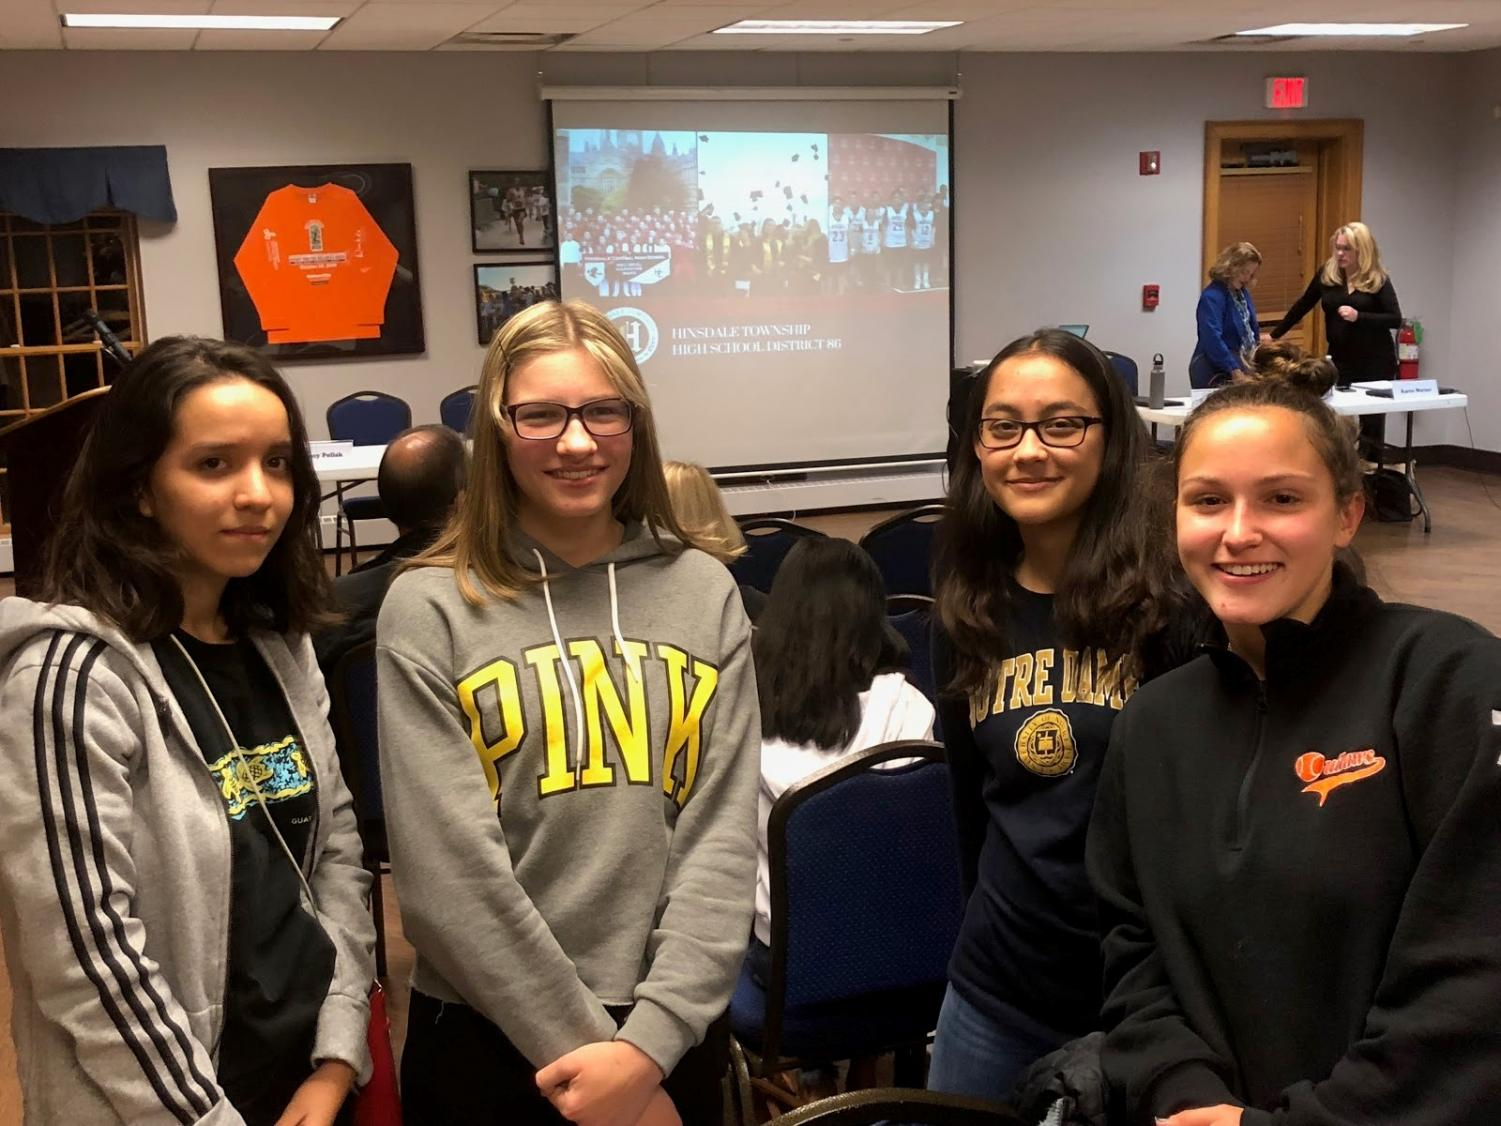 Students from both South and Central attended the meeting on Oct. 17 to learn more about the upcoming referendum vote on Nov. 6.